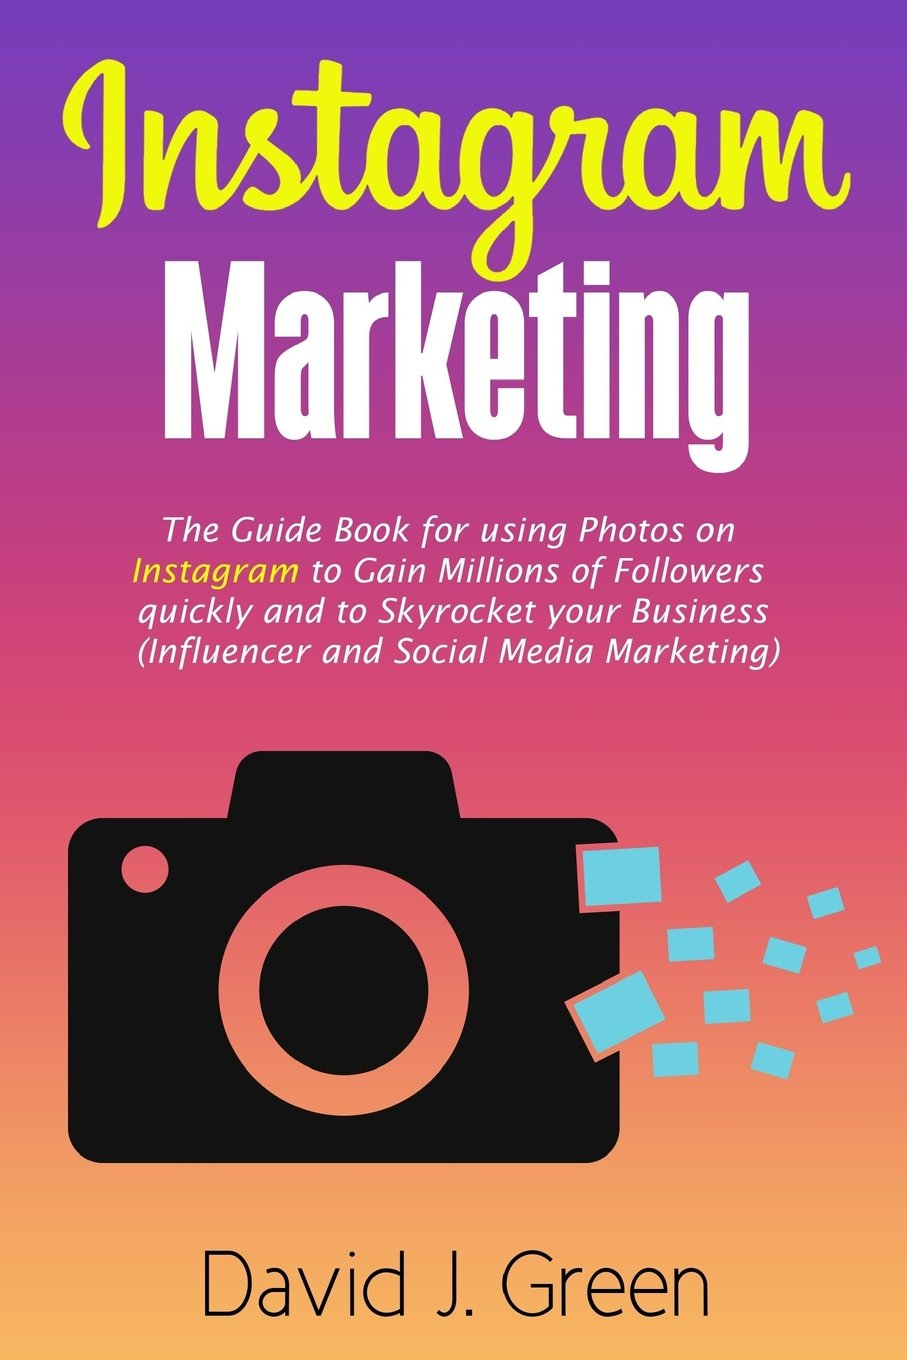 a828f70fa55 Instagram Marketing  The Guide Book for Using Photos on Instagram to Gain  Millions of Followers Quickly and to Skyrocket your Business (Influencer  and ...